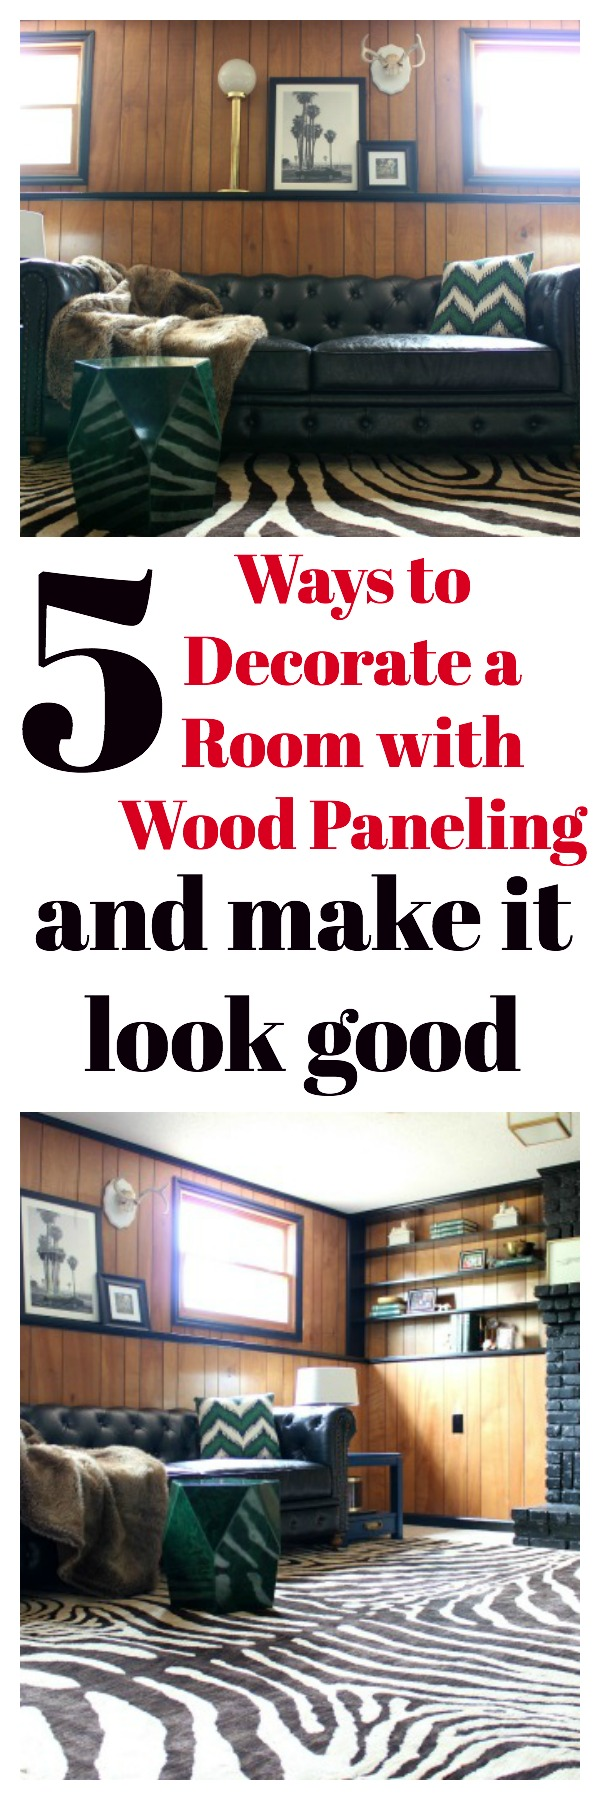 Wood Paneled Den: Five Ways To Decorate A Room With Wood Paneling